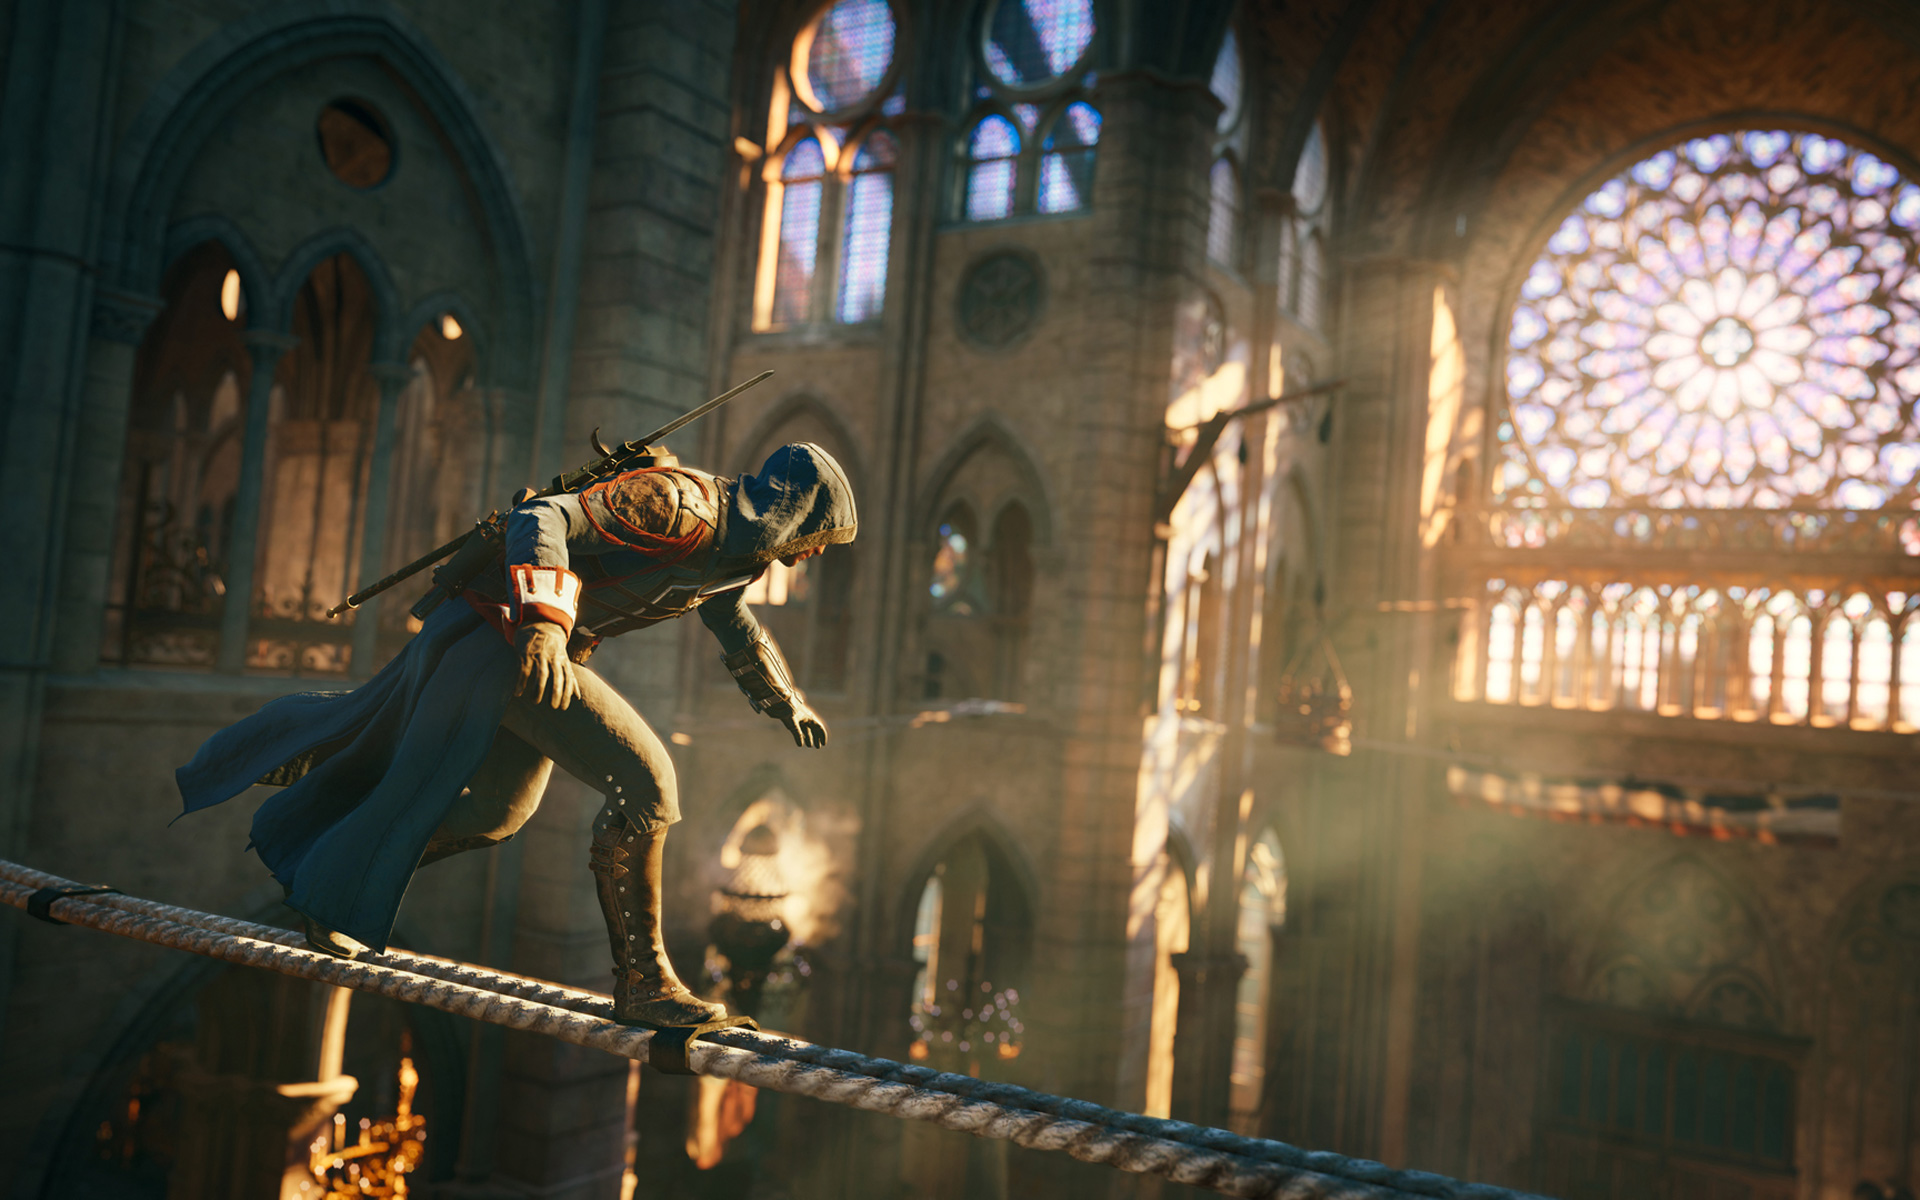 Free Assassin's Creed: Unity Wallpaper in 1920x1200